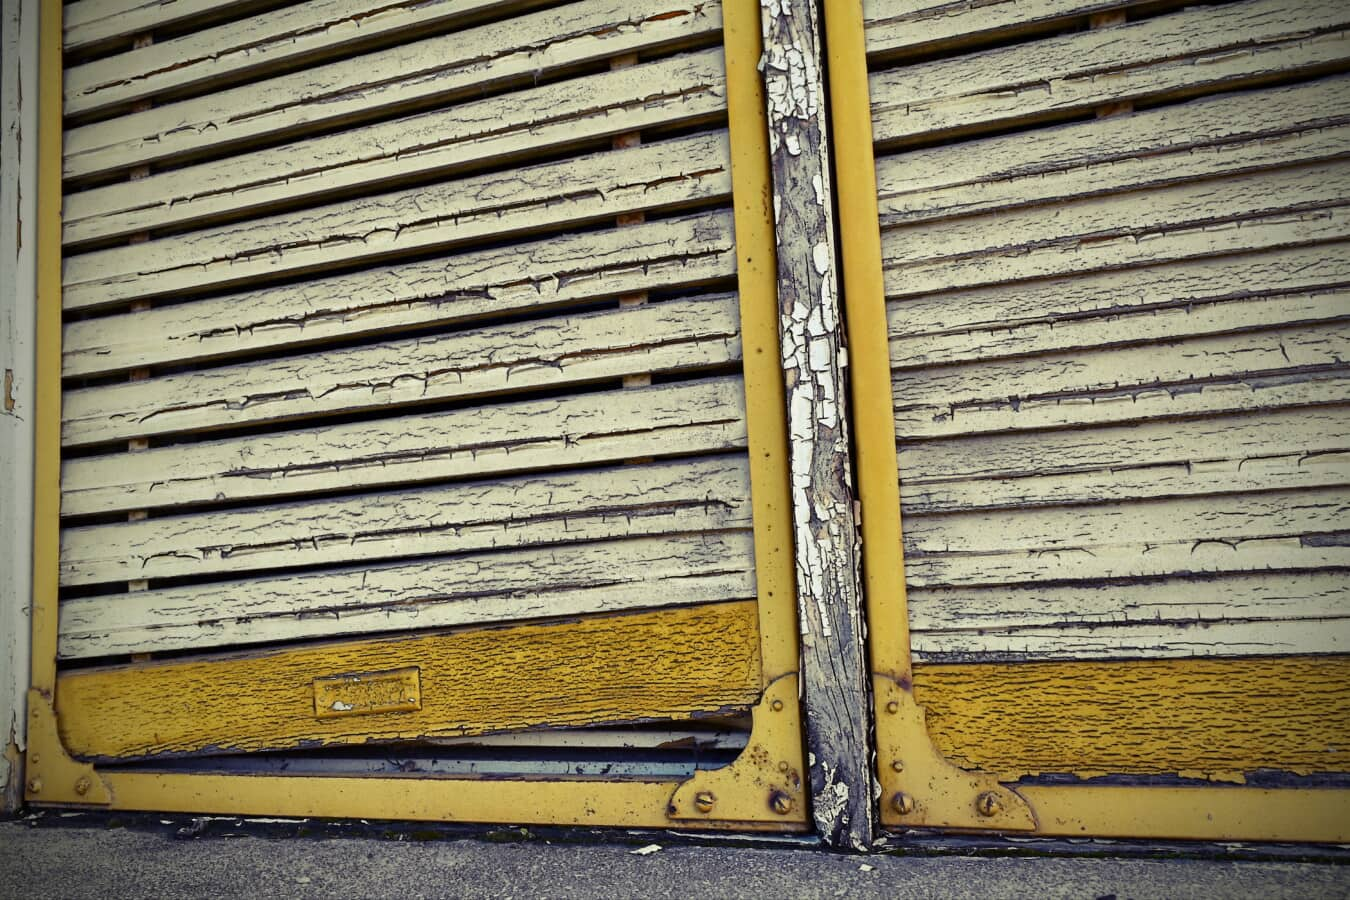 window, decay, yellowish brown, wooden, old, wood, texture, wall, retro, pattern